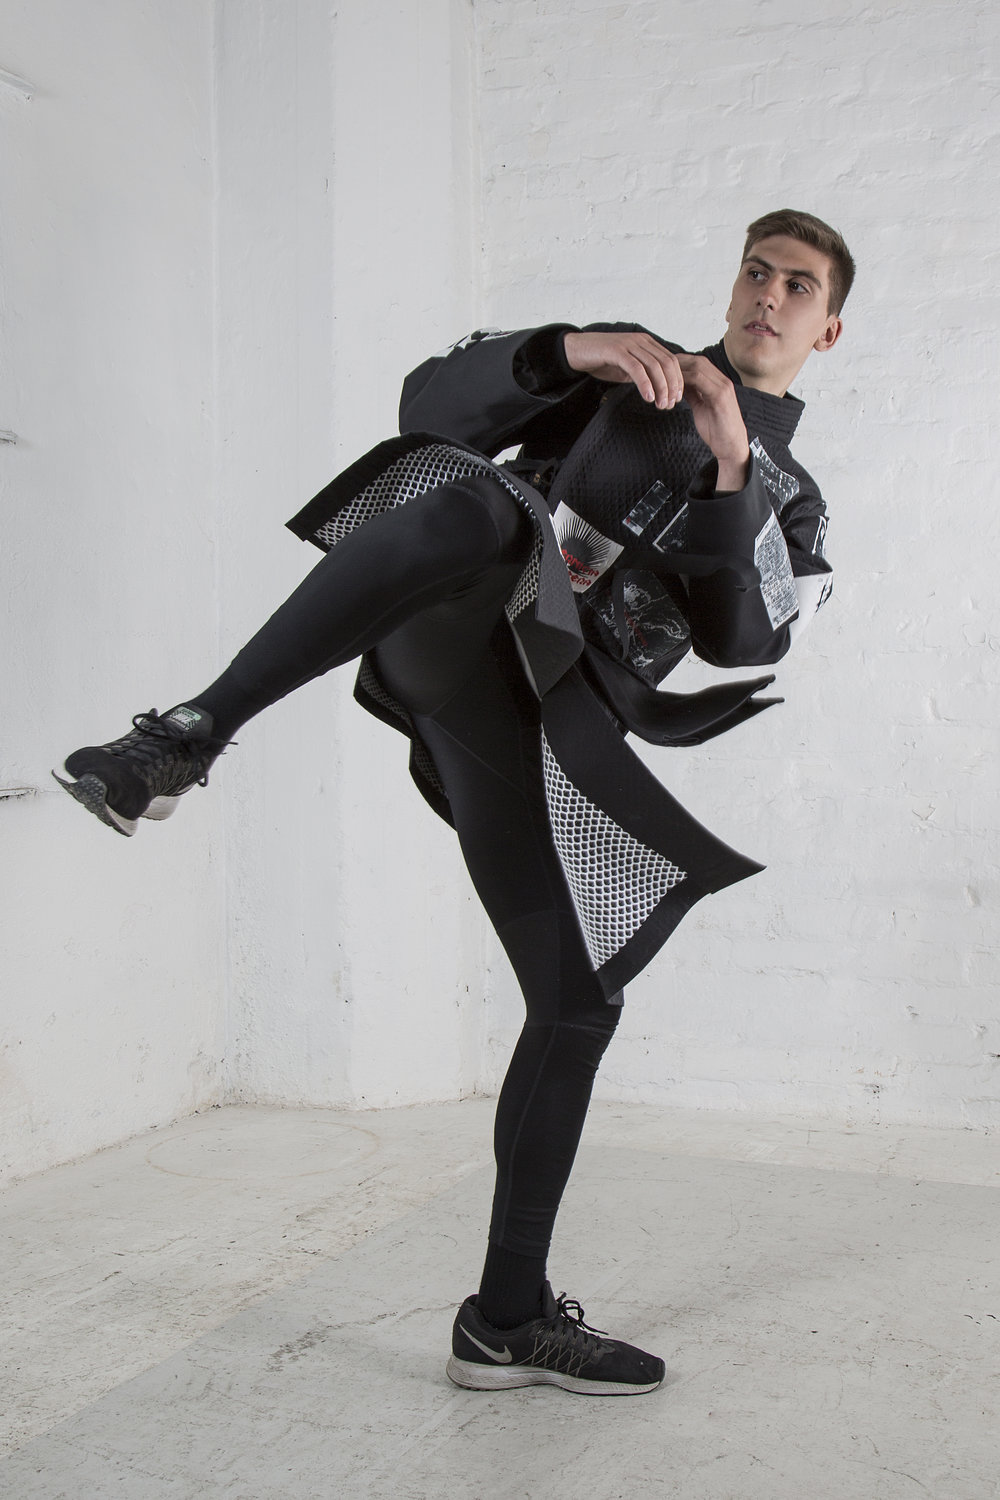 Functional Clothing and Materials